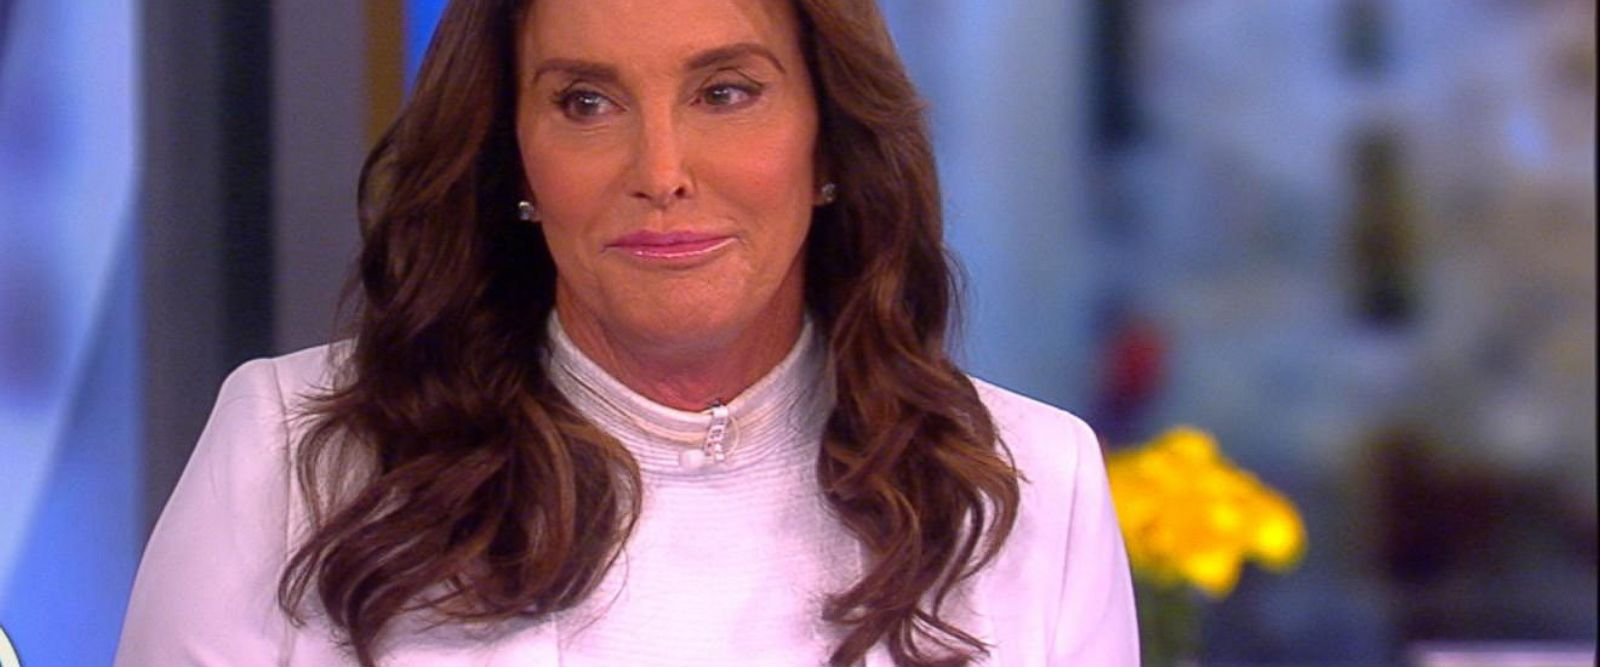 VIDEO: Caitlyn Jenner talks voting for Trump, LGBT rights and running for office